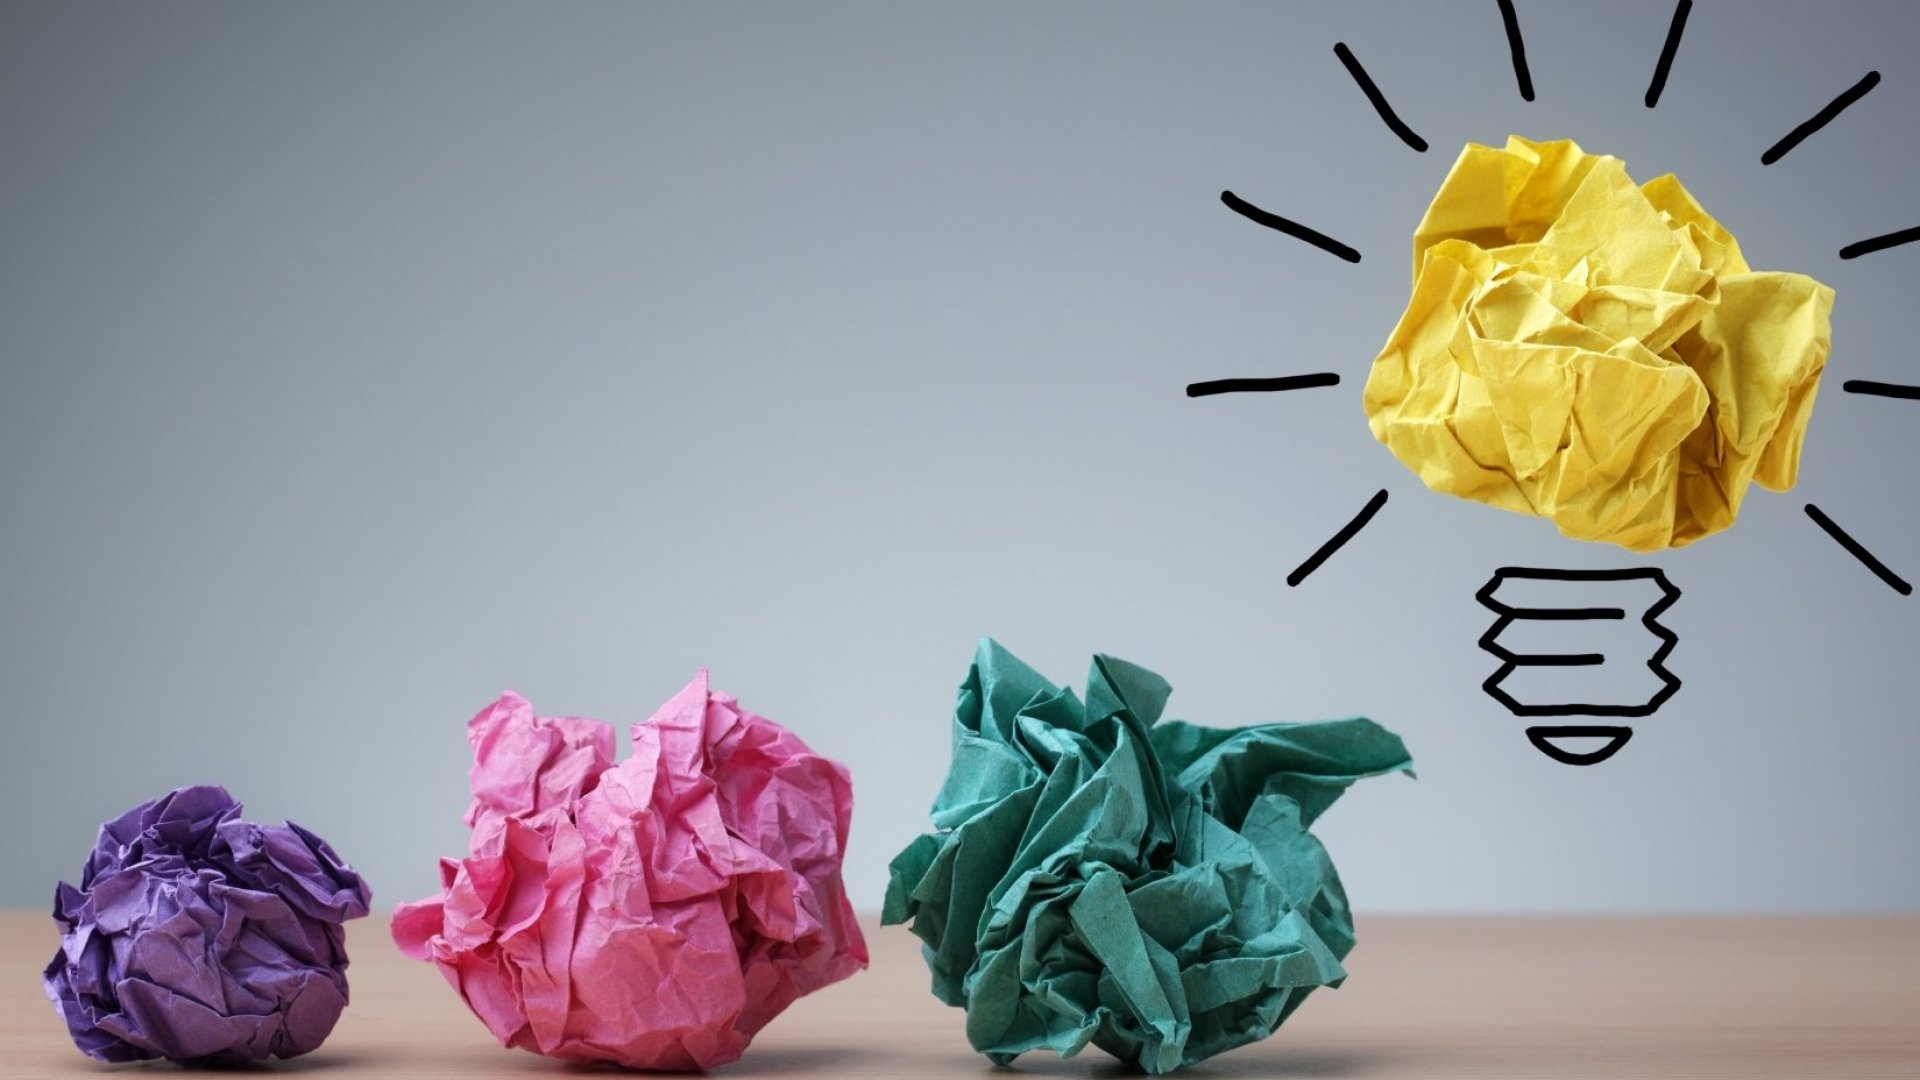 Science Says You Should Act on Your Business Idea (Even If It's Bad)